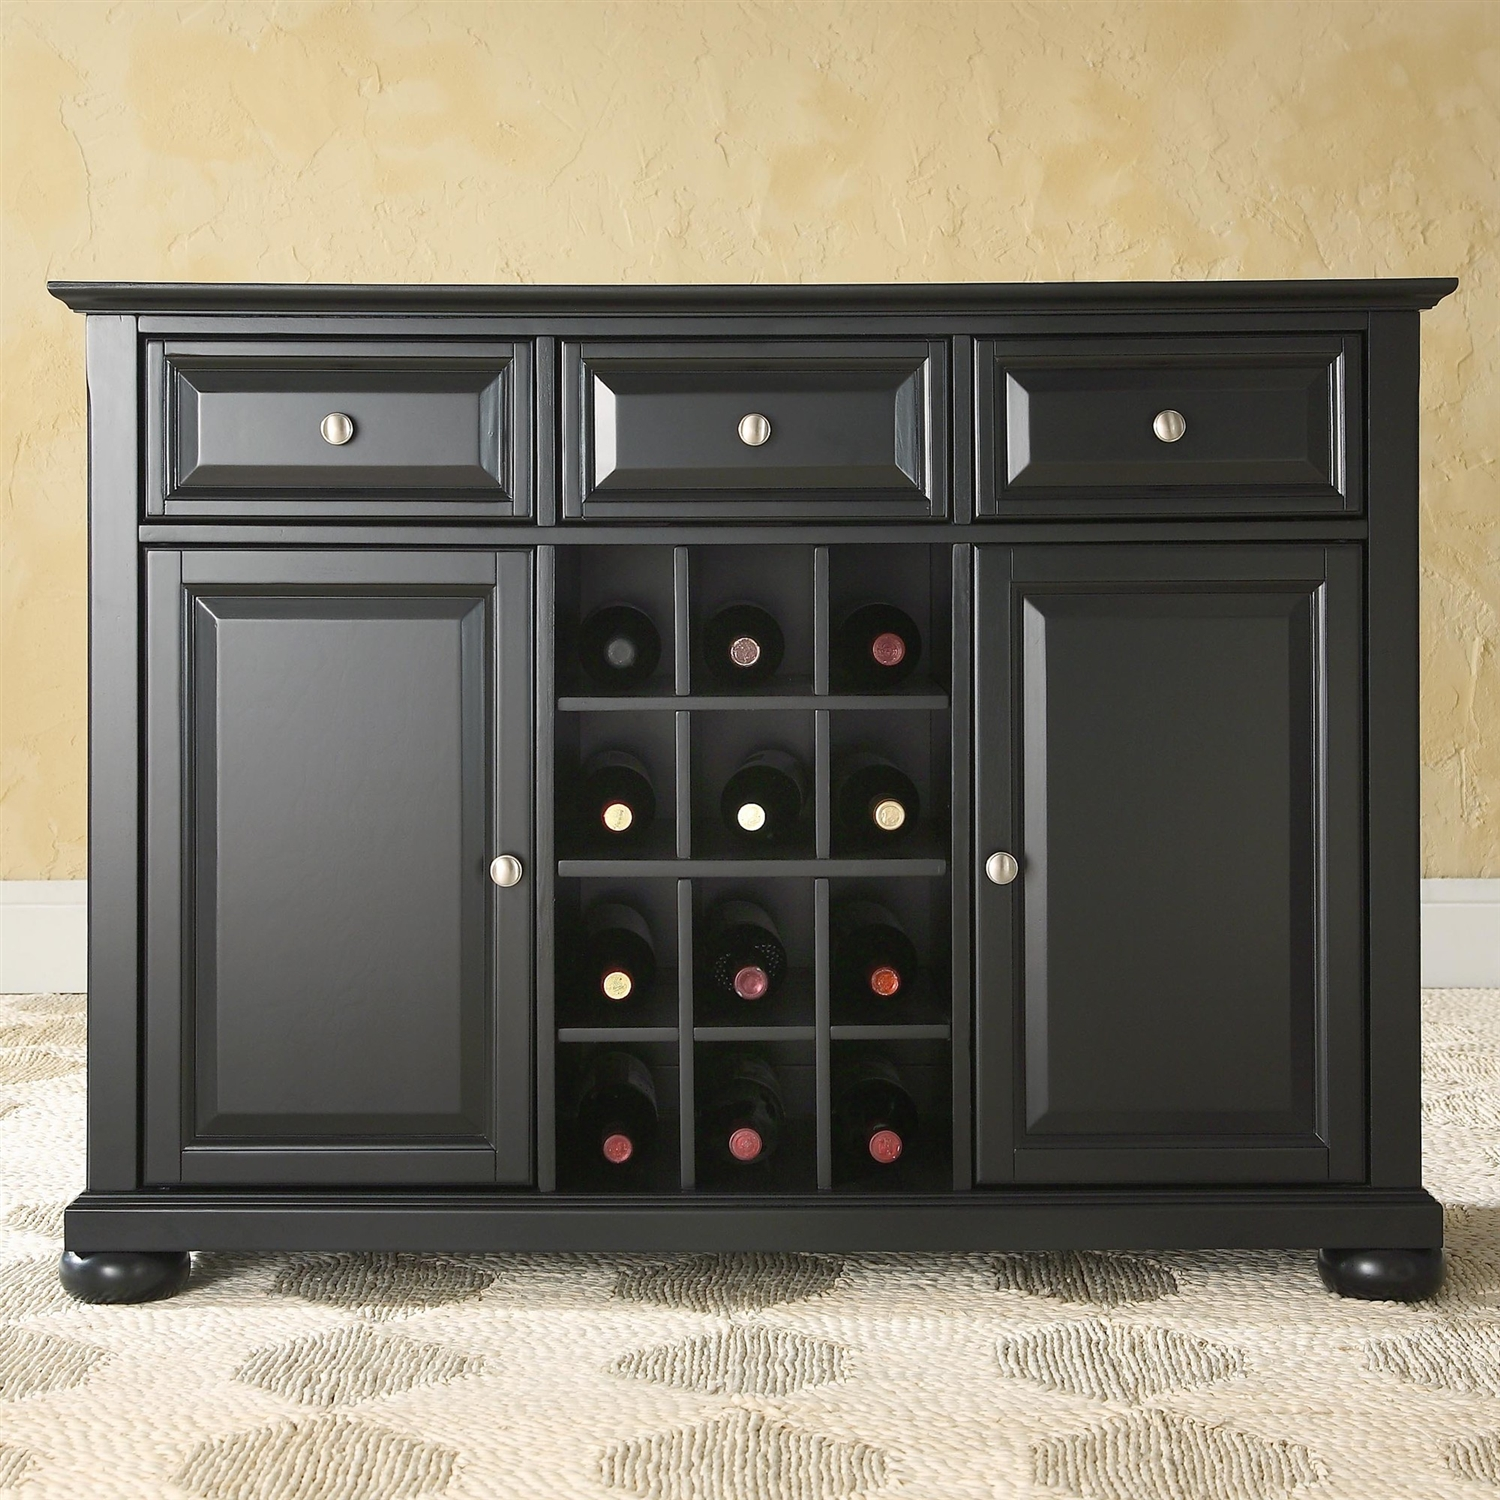 Captivating Black Dining Room Buffet Sideboard Cabinet With Wine Storage Part 17